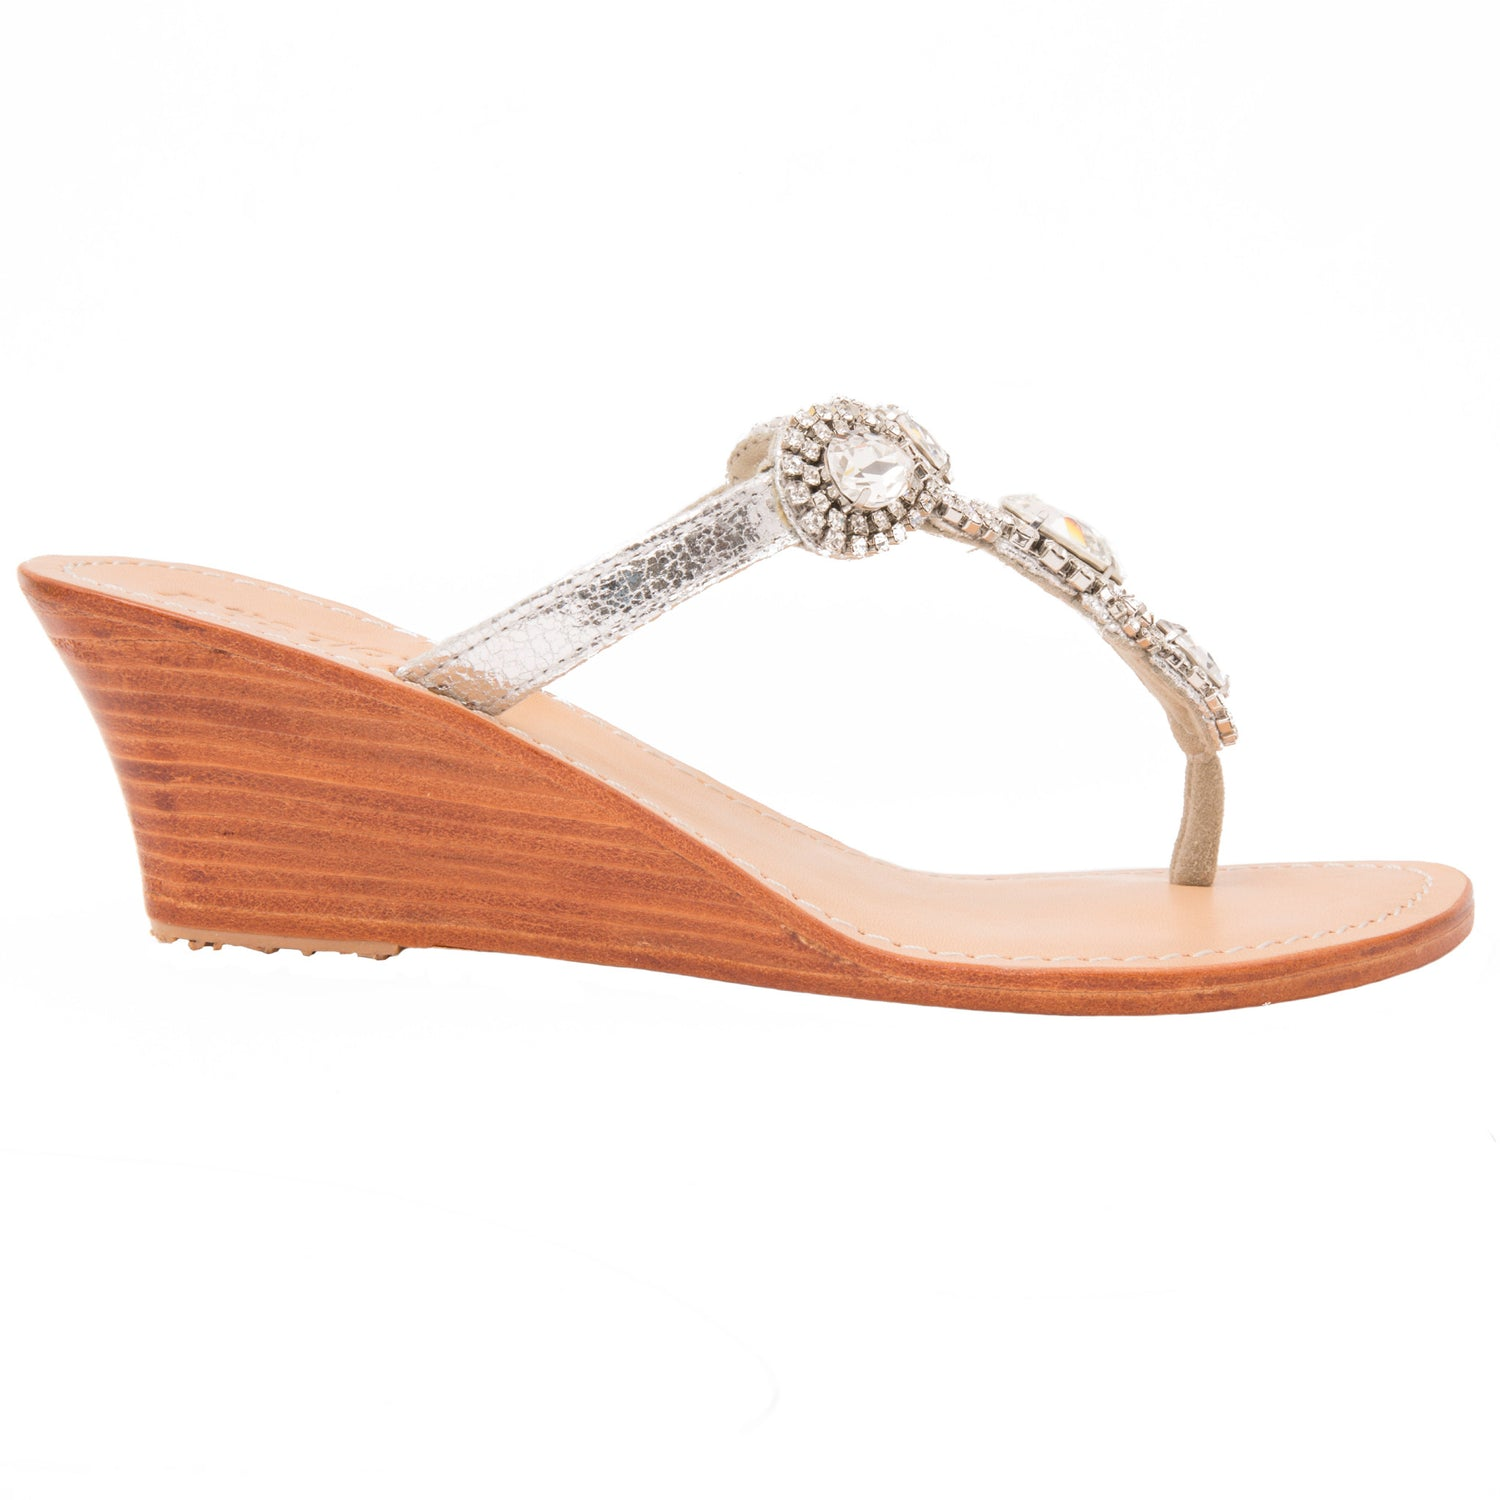 Cairo - Mystique Sandals